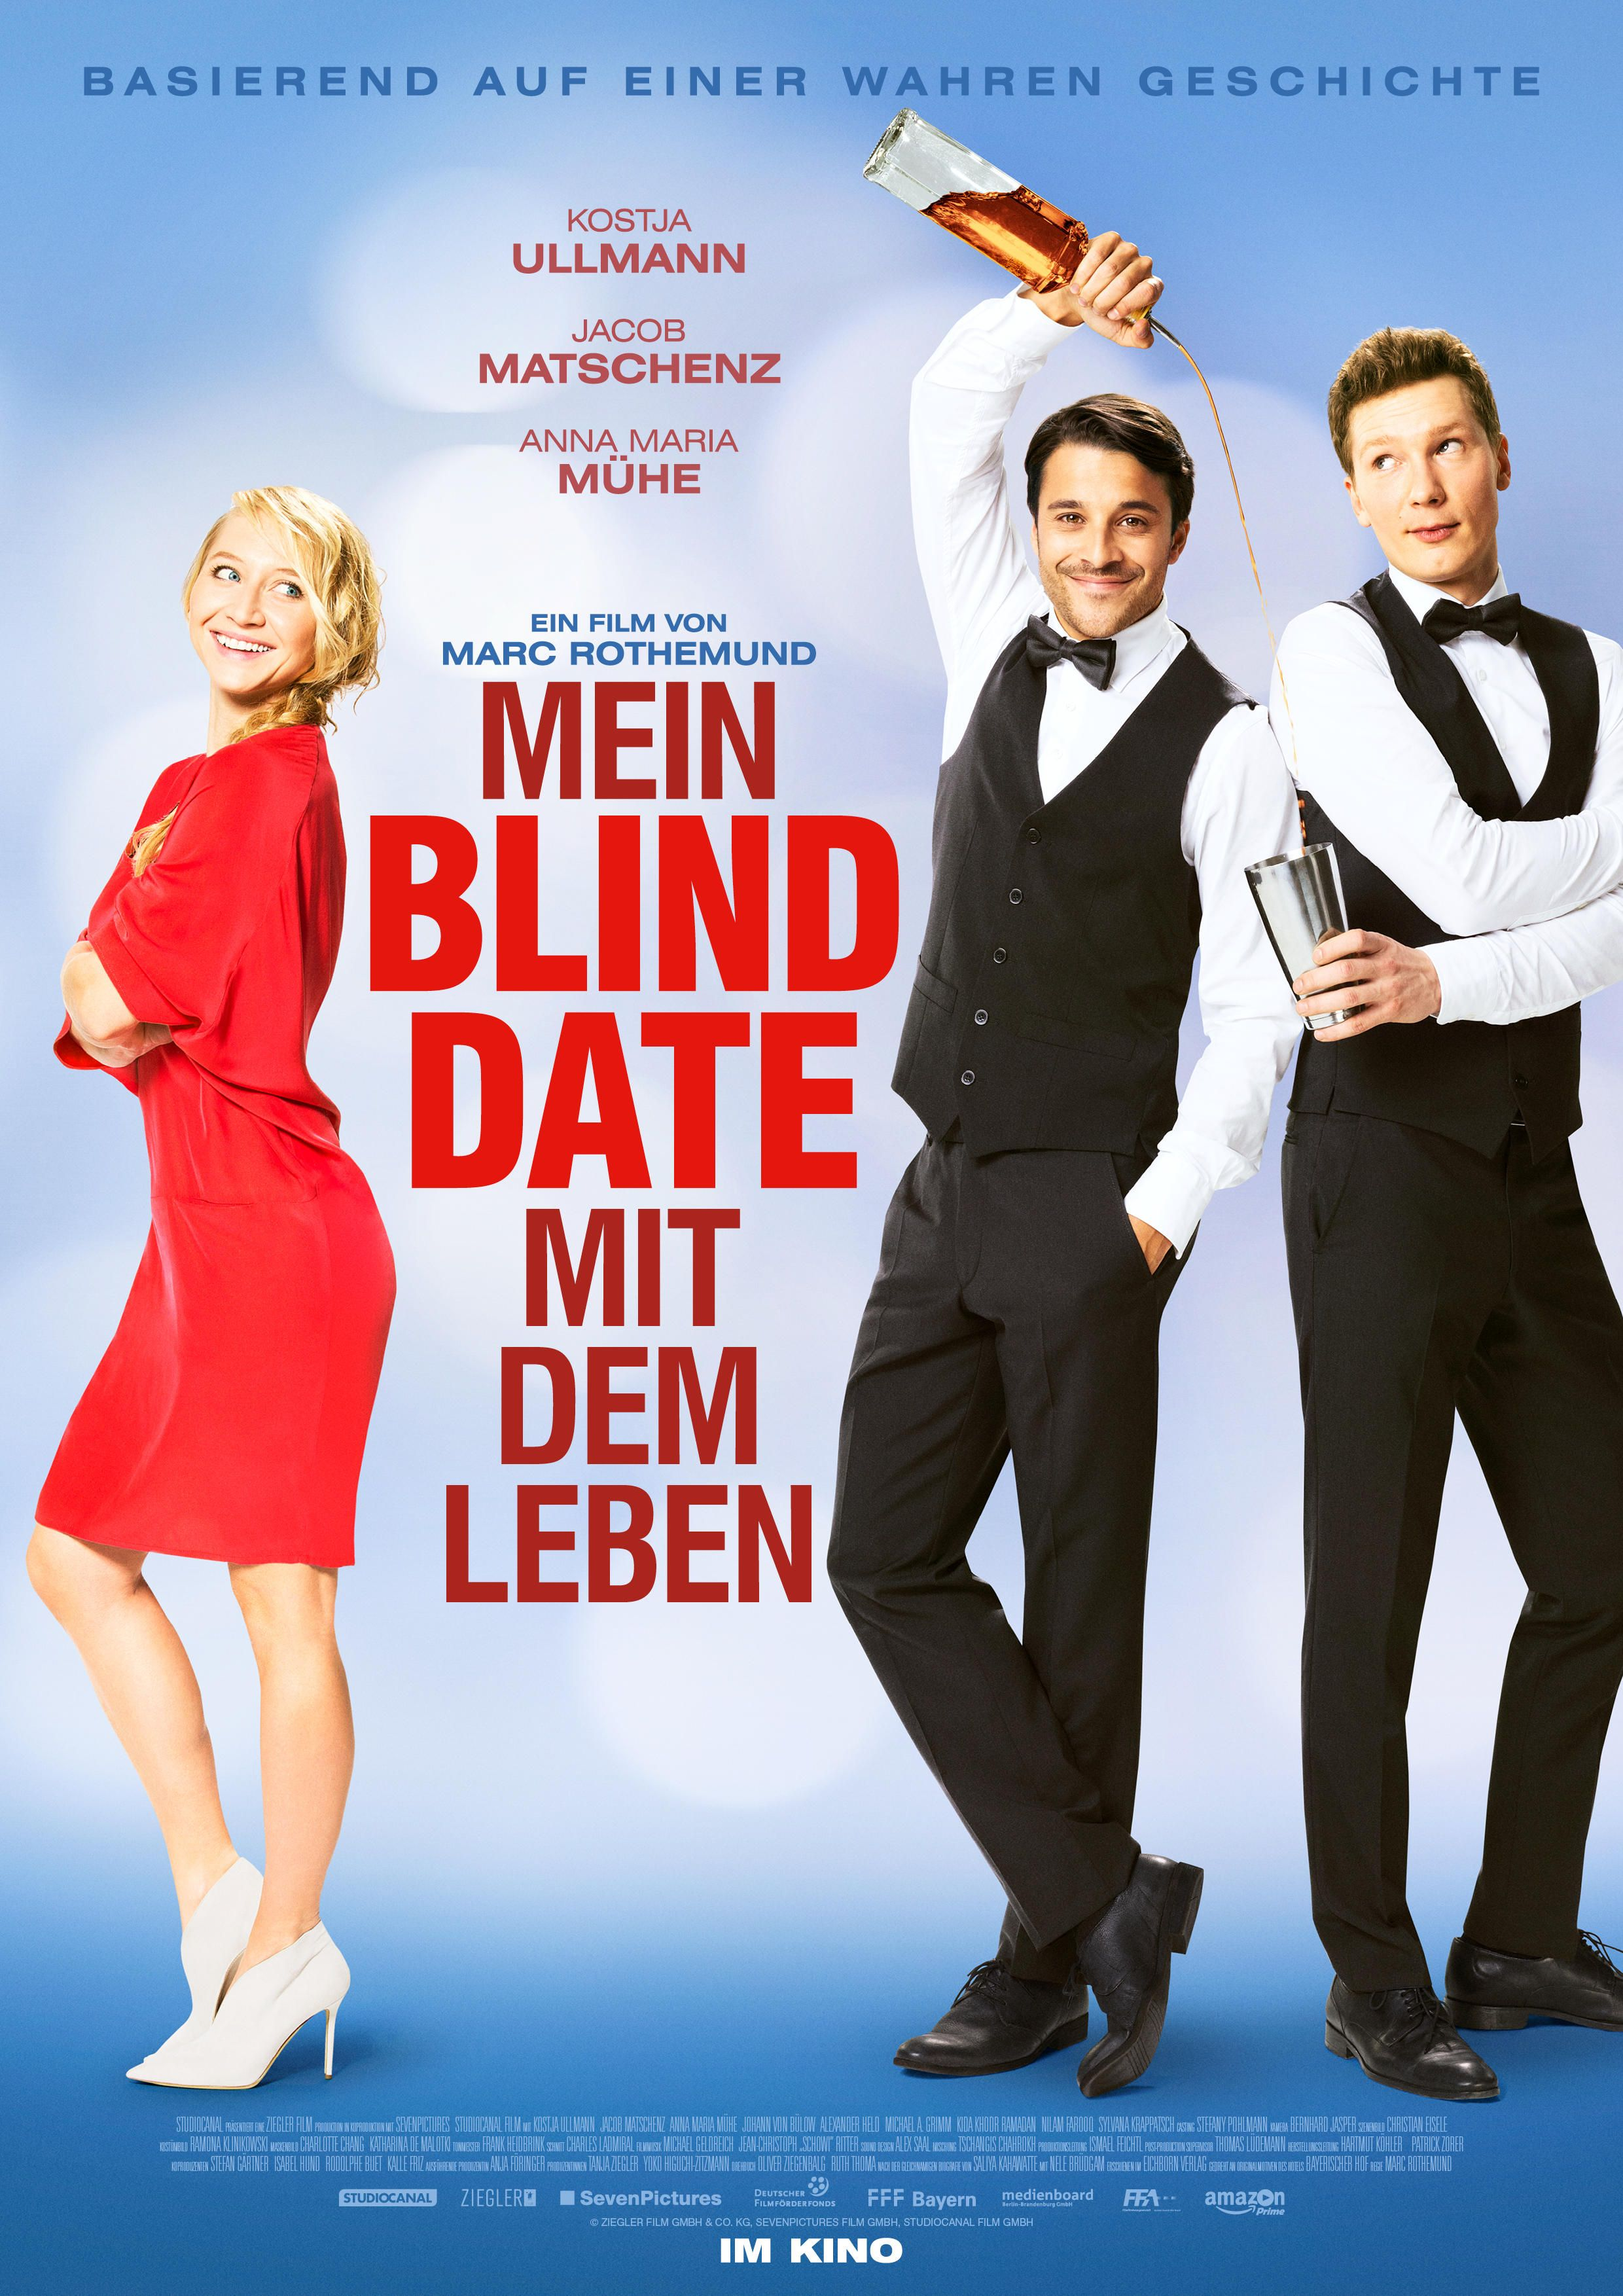 cover blind threeblinddatesfull dates meghan three reveal blinds by quinn